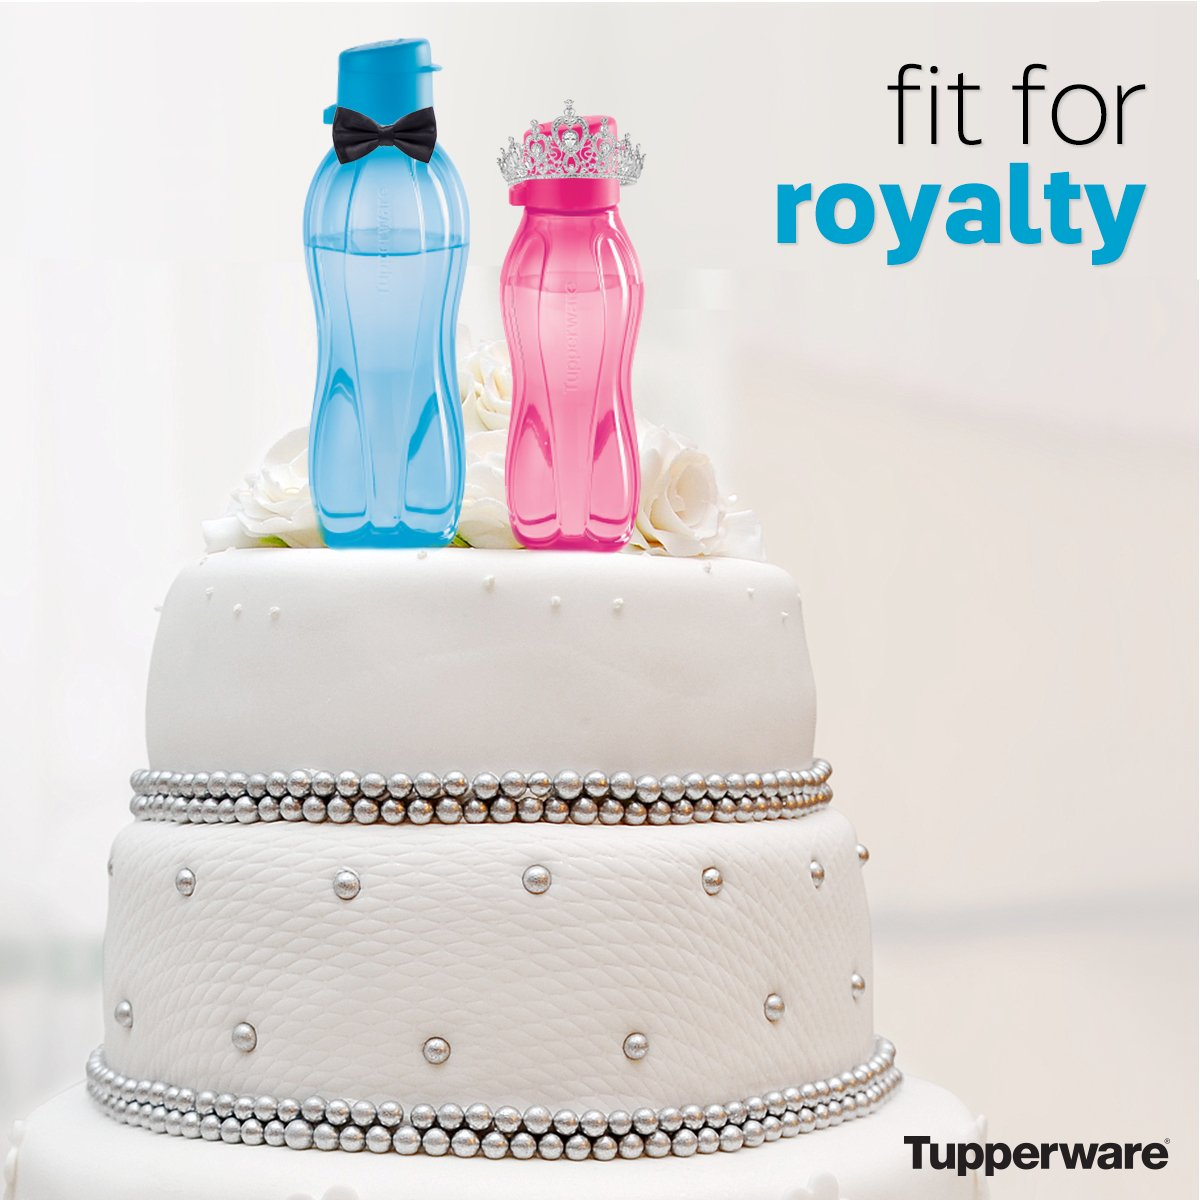 Sleek Newlyweds Gifts Newlyweds Home Tupperware On A Wedding Today Or Gifts Your Tupperware Gift gifts Gifts For Newlyweds